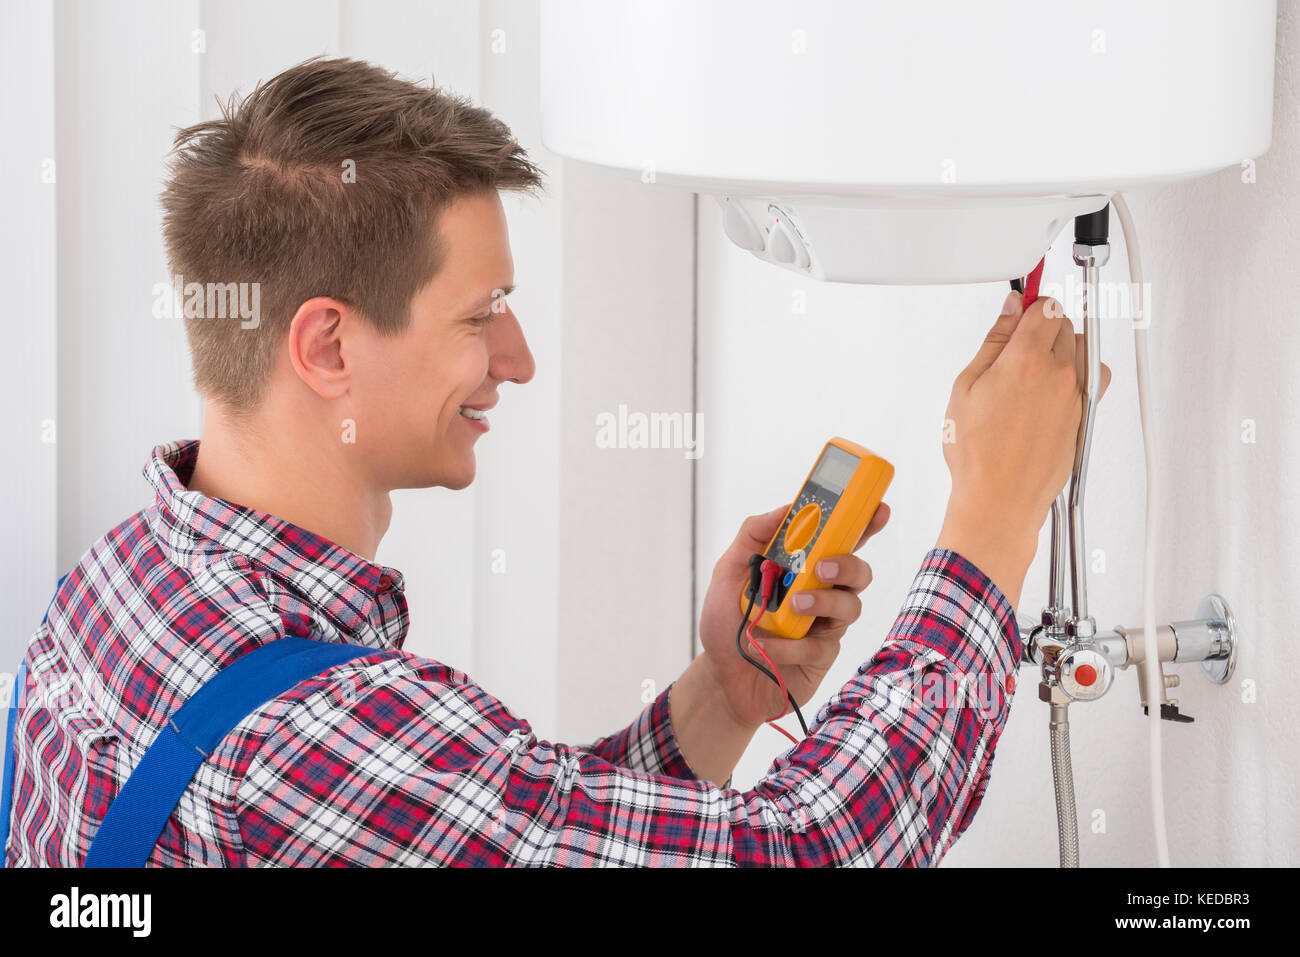 Smiling Male Plumber Examining Electric Boiler With Multimeter Probe - Stock Image